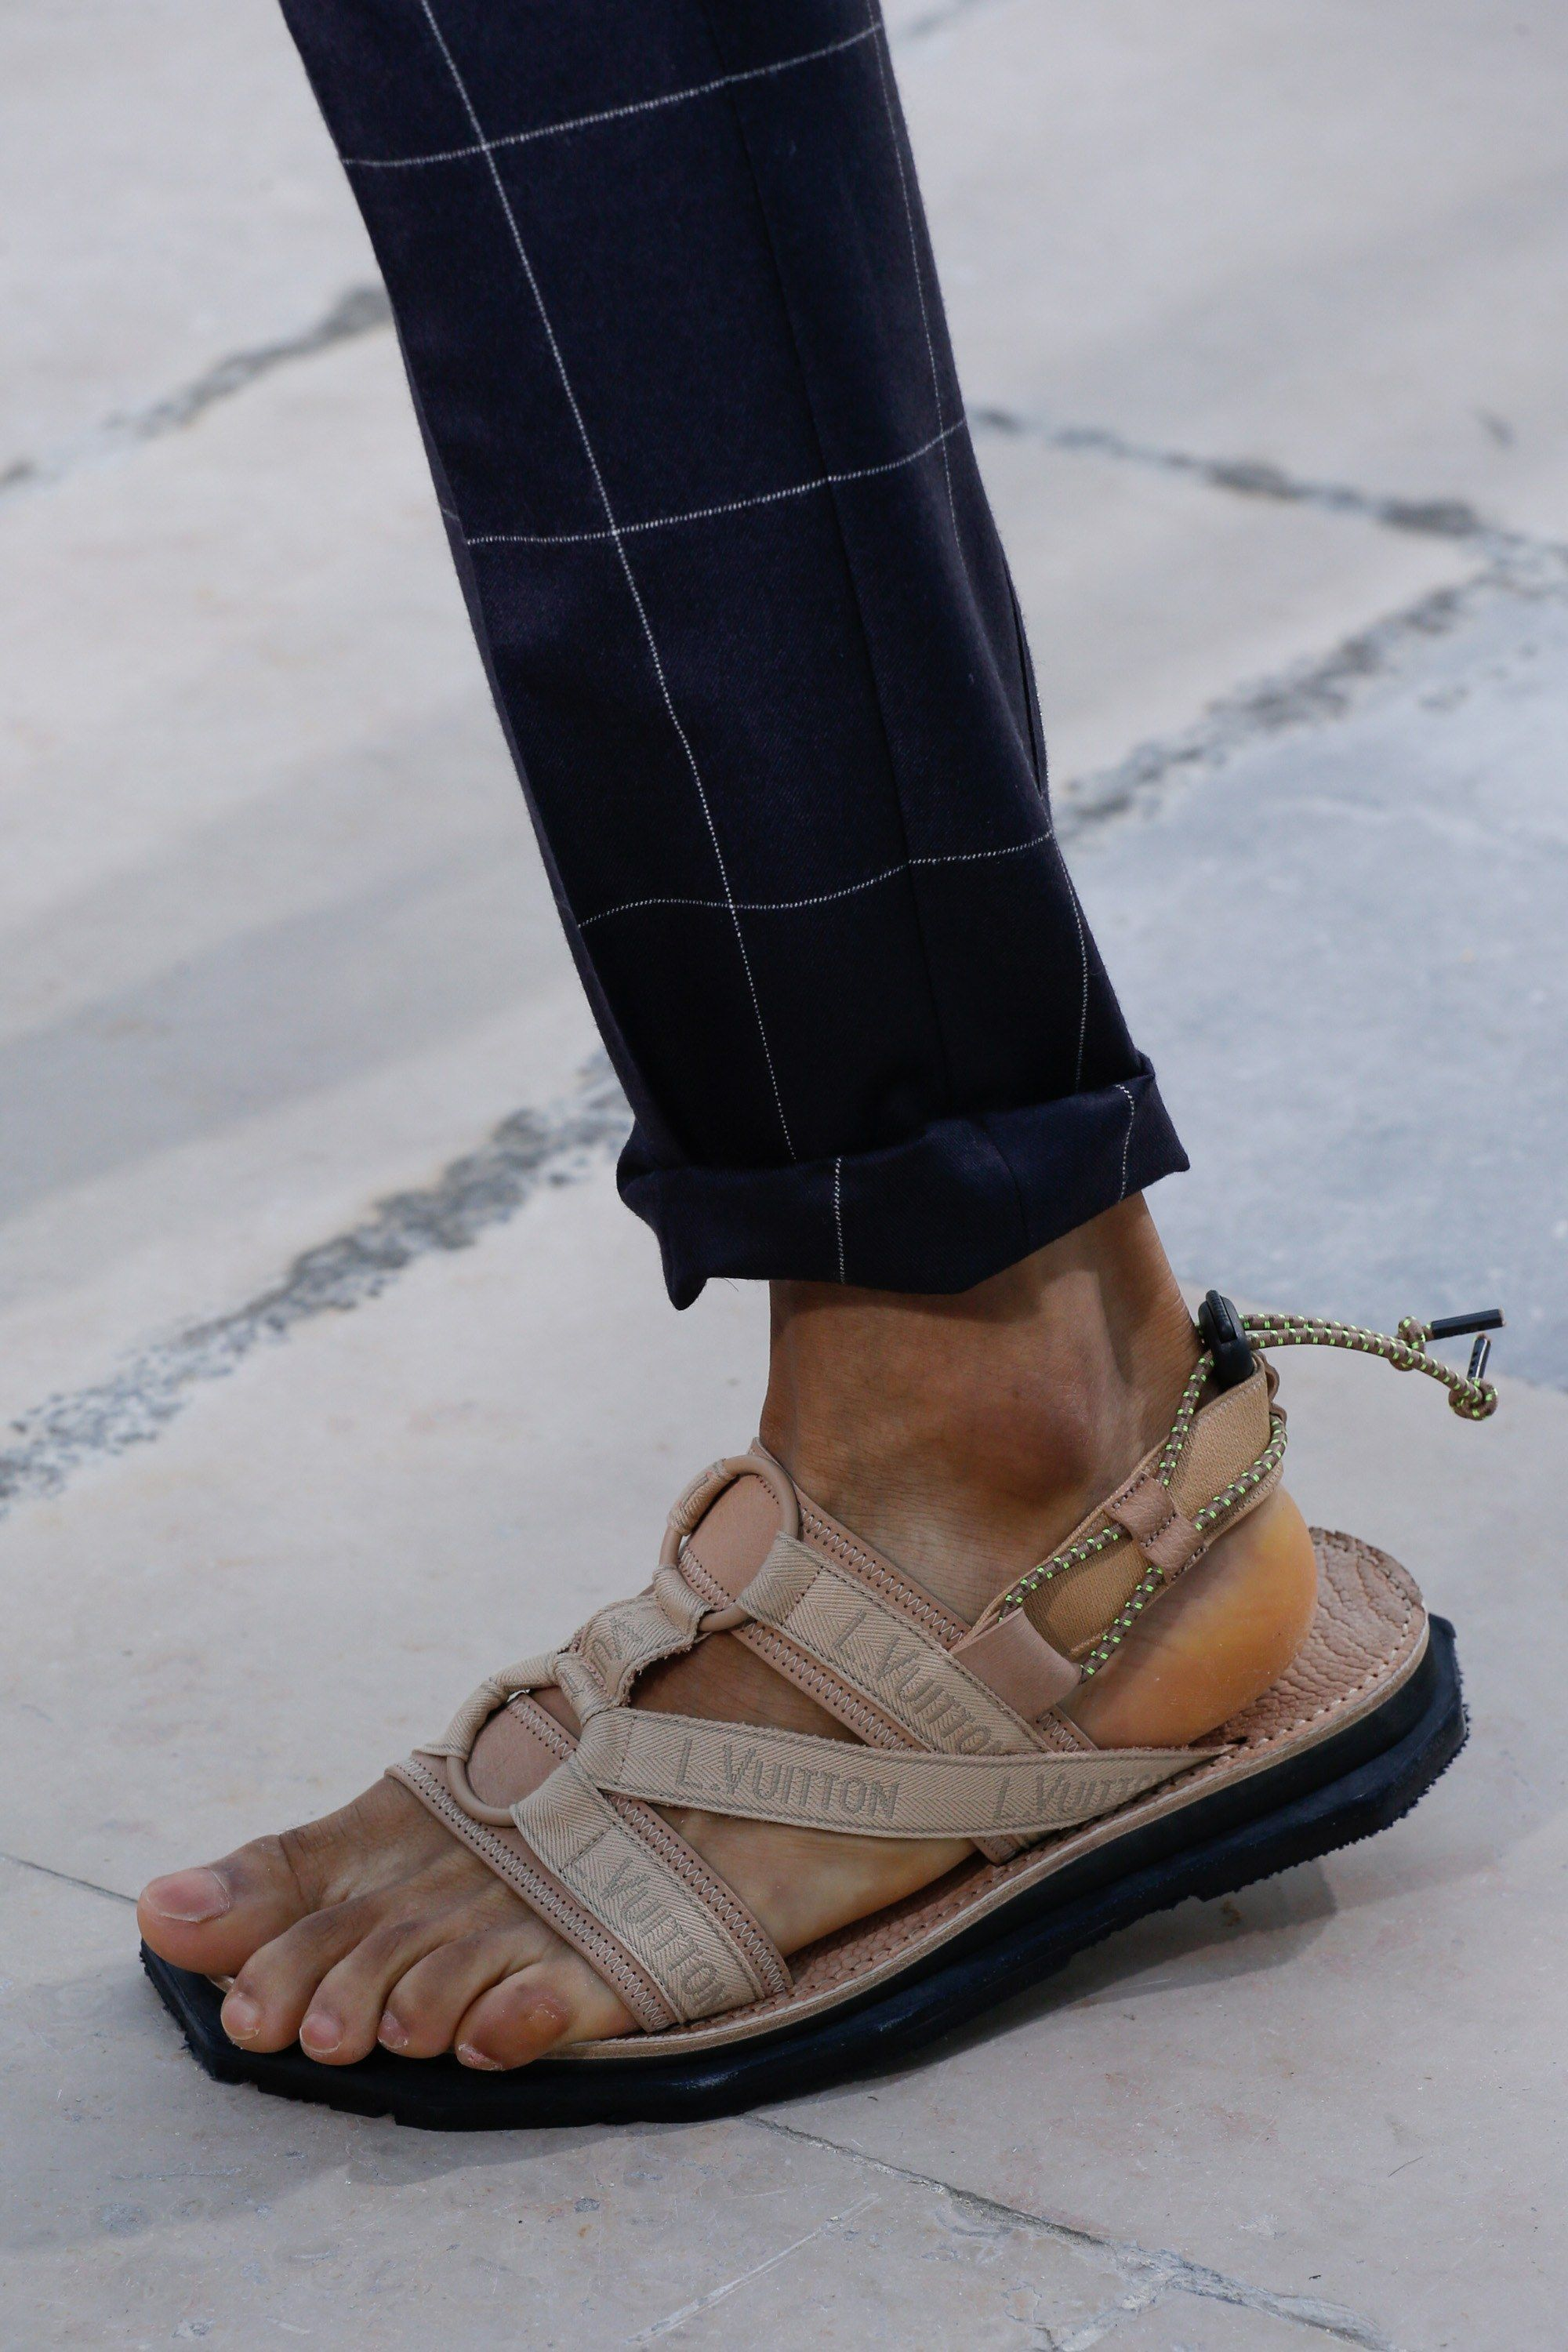 09824173bcf See detail photos for Louis Vuitton Spring 2017 Menswear collection.   Mensaccessories